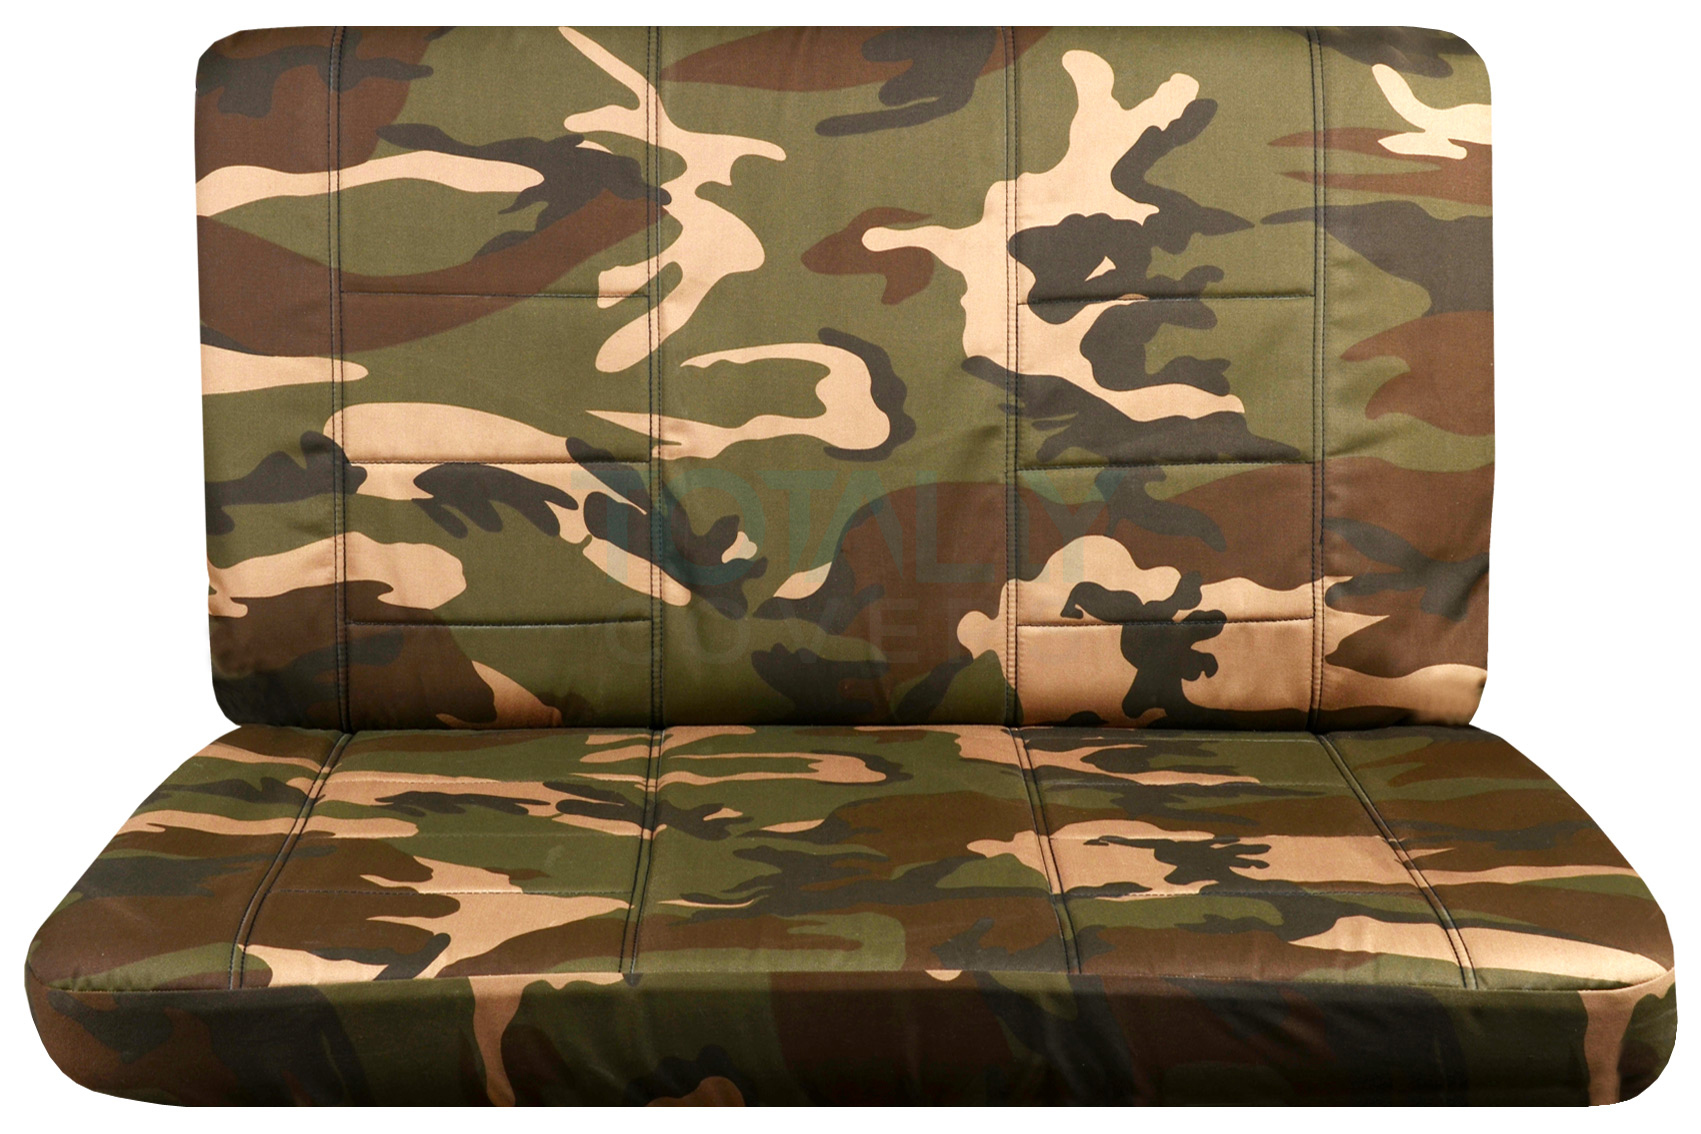 Car Bench Seat Covers >> Camouflage Bench Seat Covers for Car/Truck/Van/SUV 60/40 ...